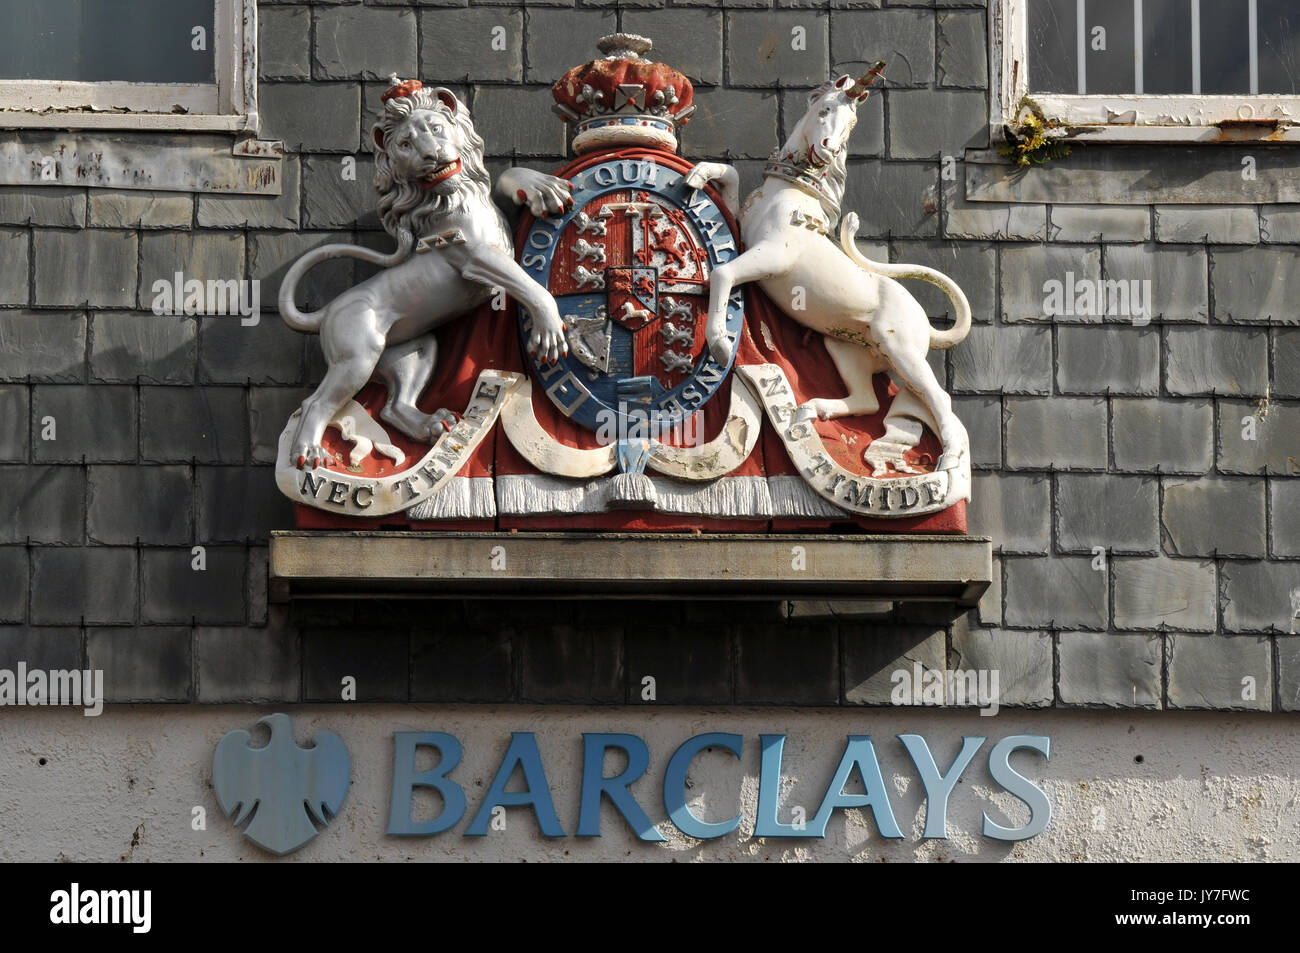 The Barclays Bank emblem and sign with the name of the bank over a door with a coat of arms or insignia emblem. Financial institutions and fiscal. - Stock Image